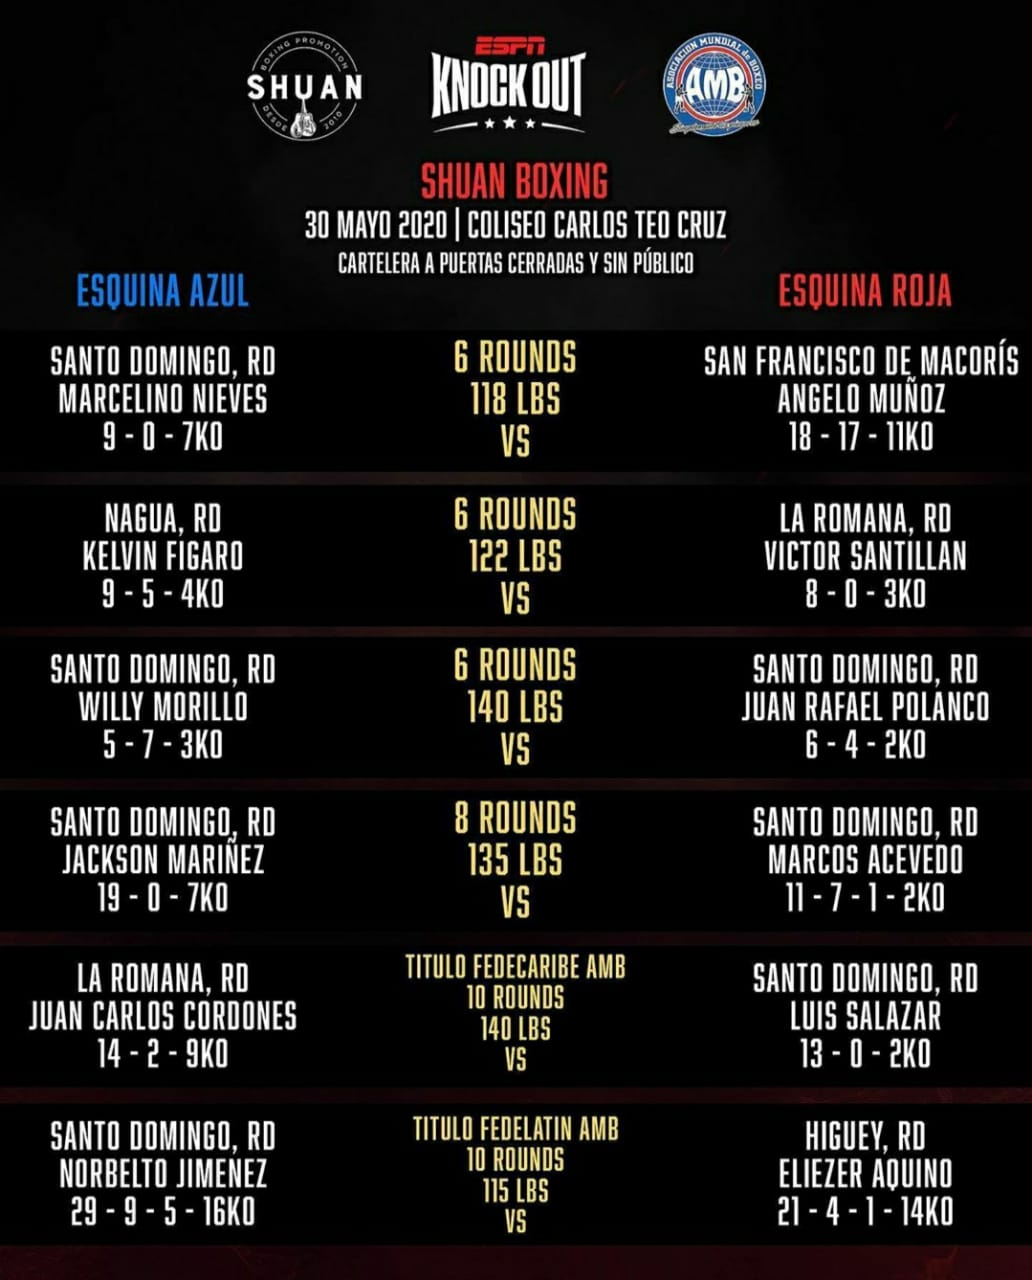 Dominican fighters to be tested for Covid-19 on Wednesday